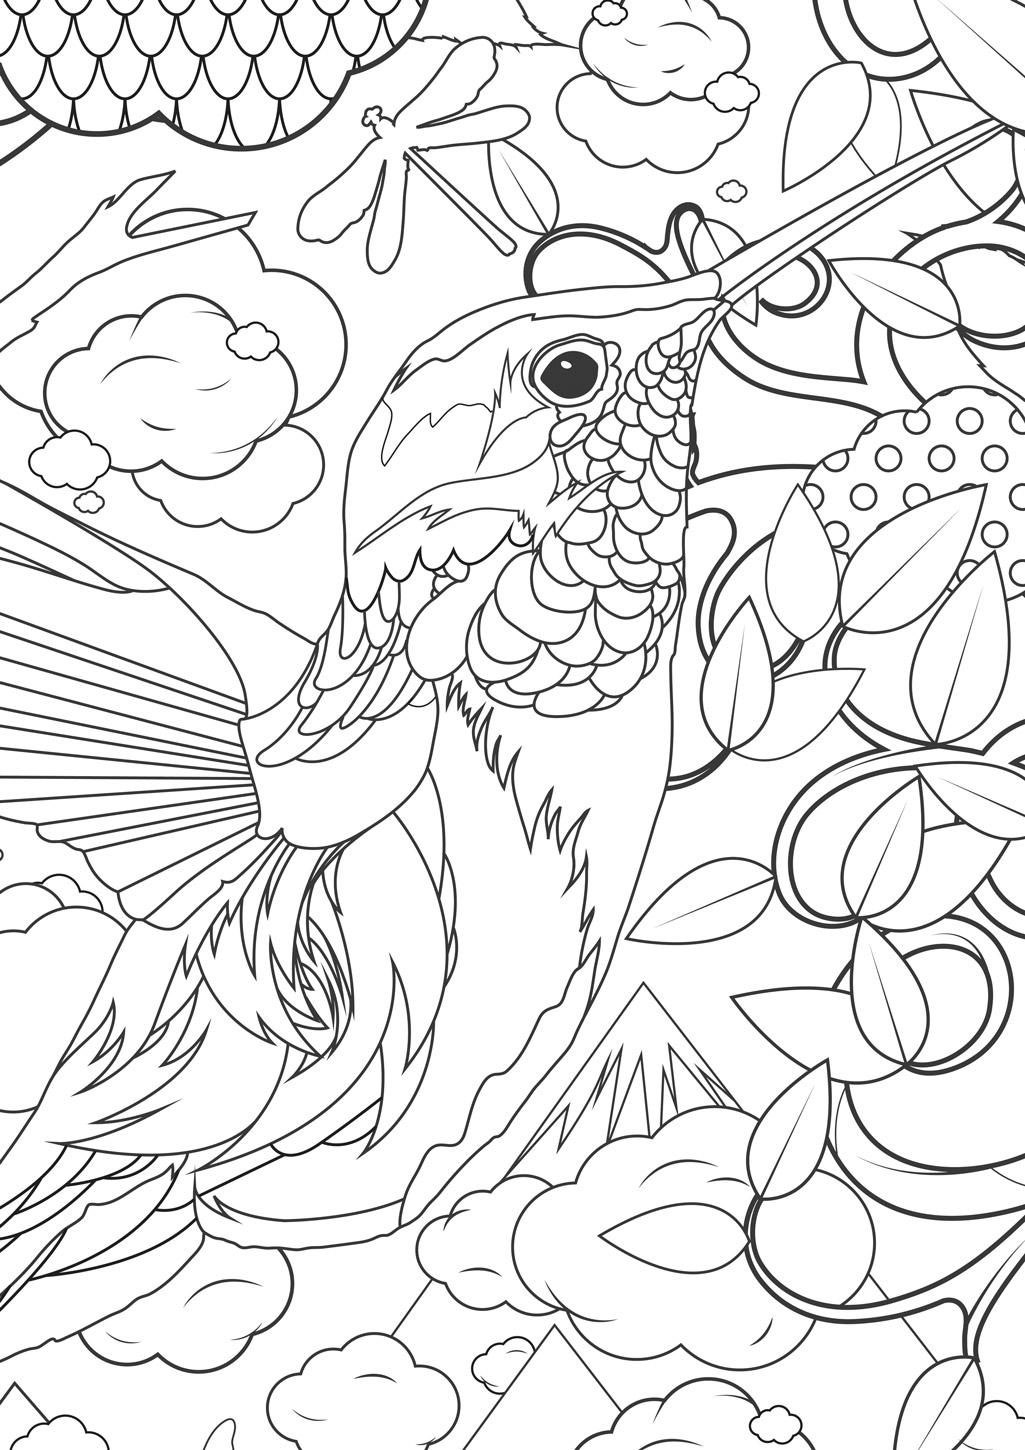 Christmas Coloring Pages For Older Students With Hard Drawing Kids At GetDrawings Com Free Personal Use